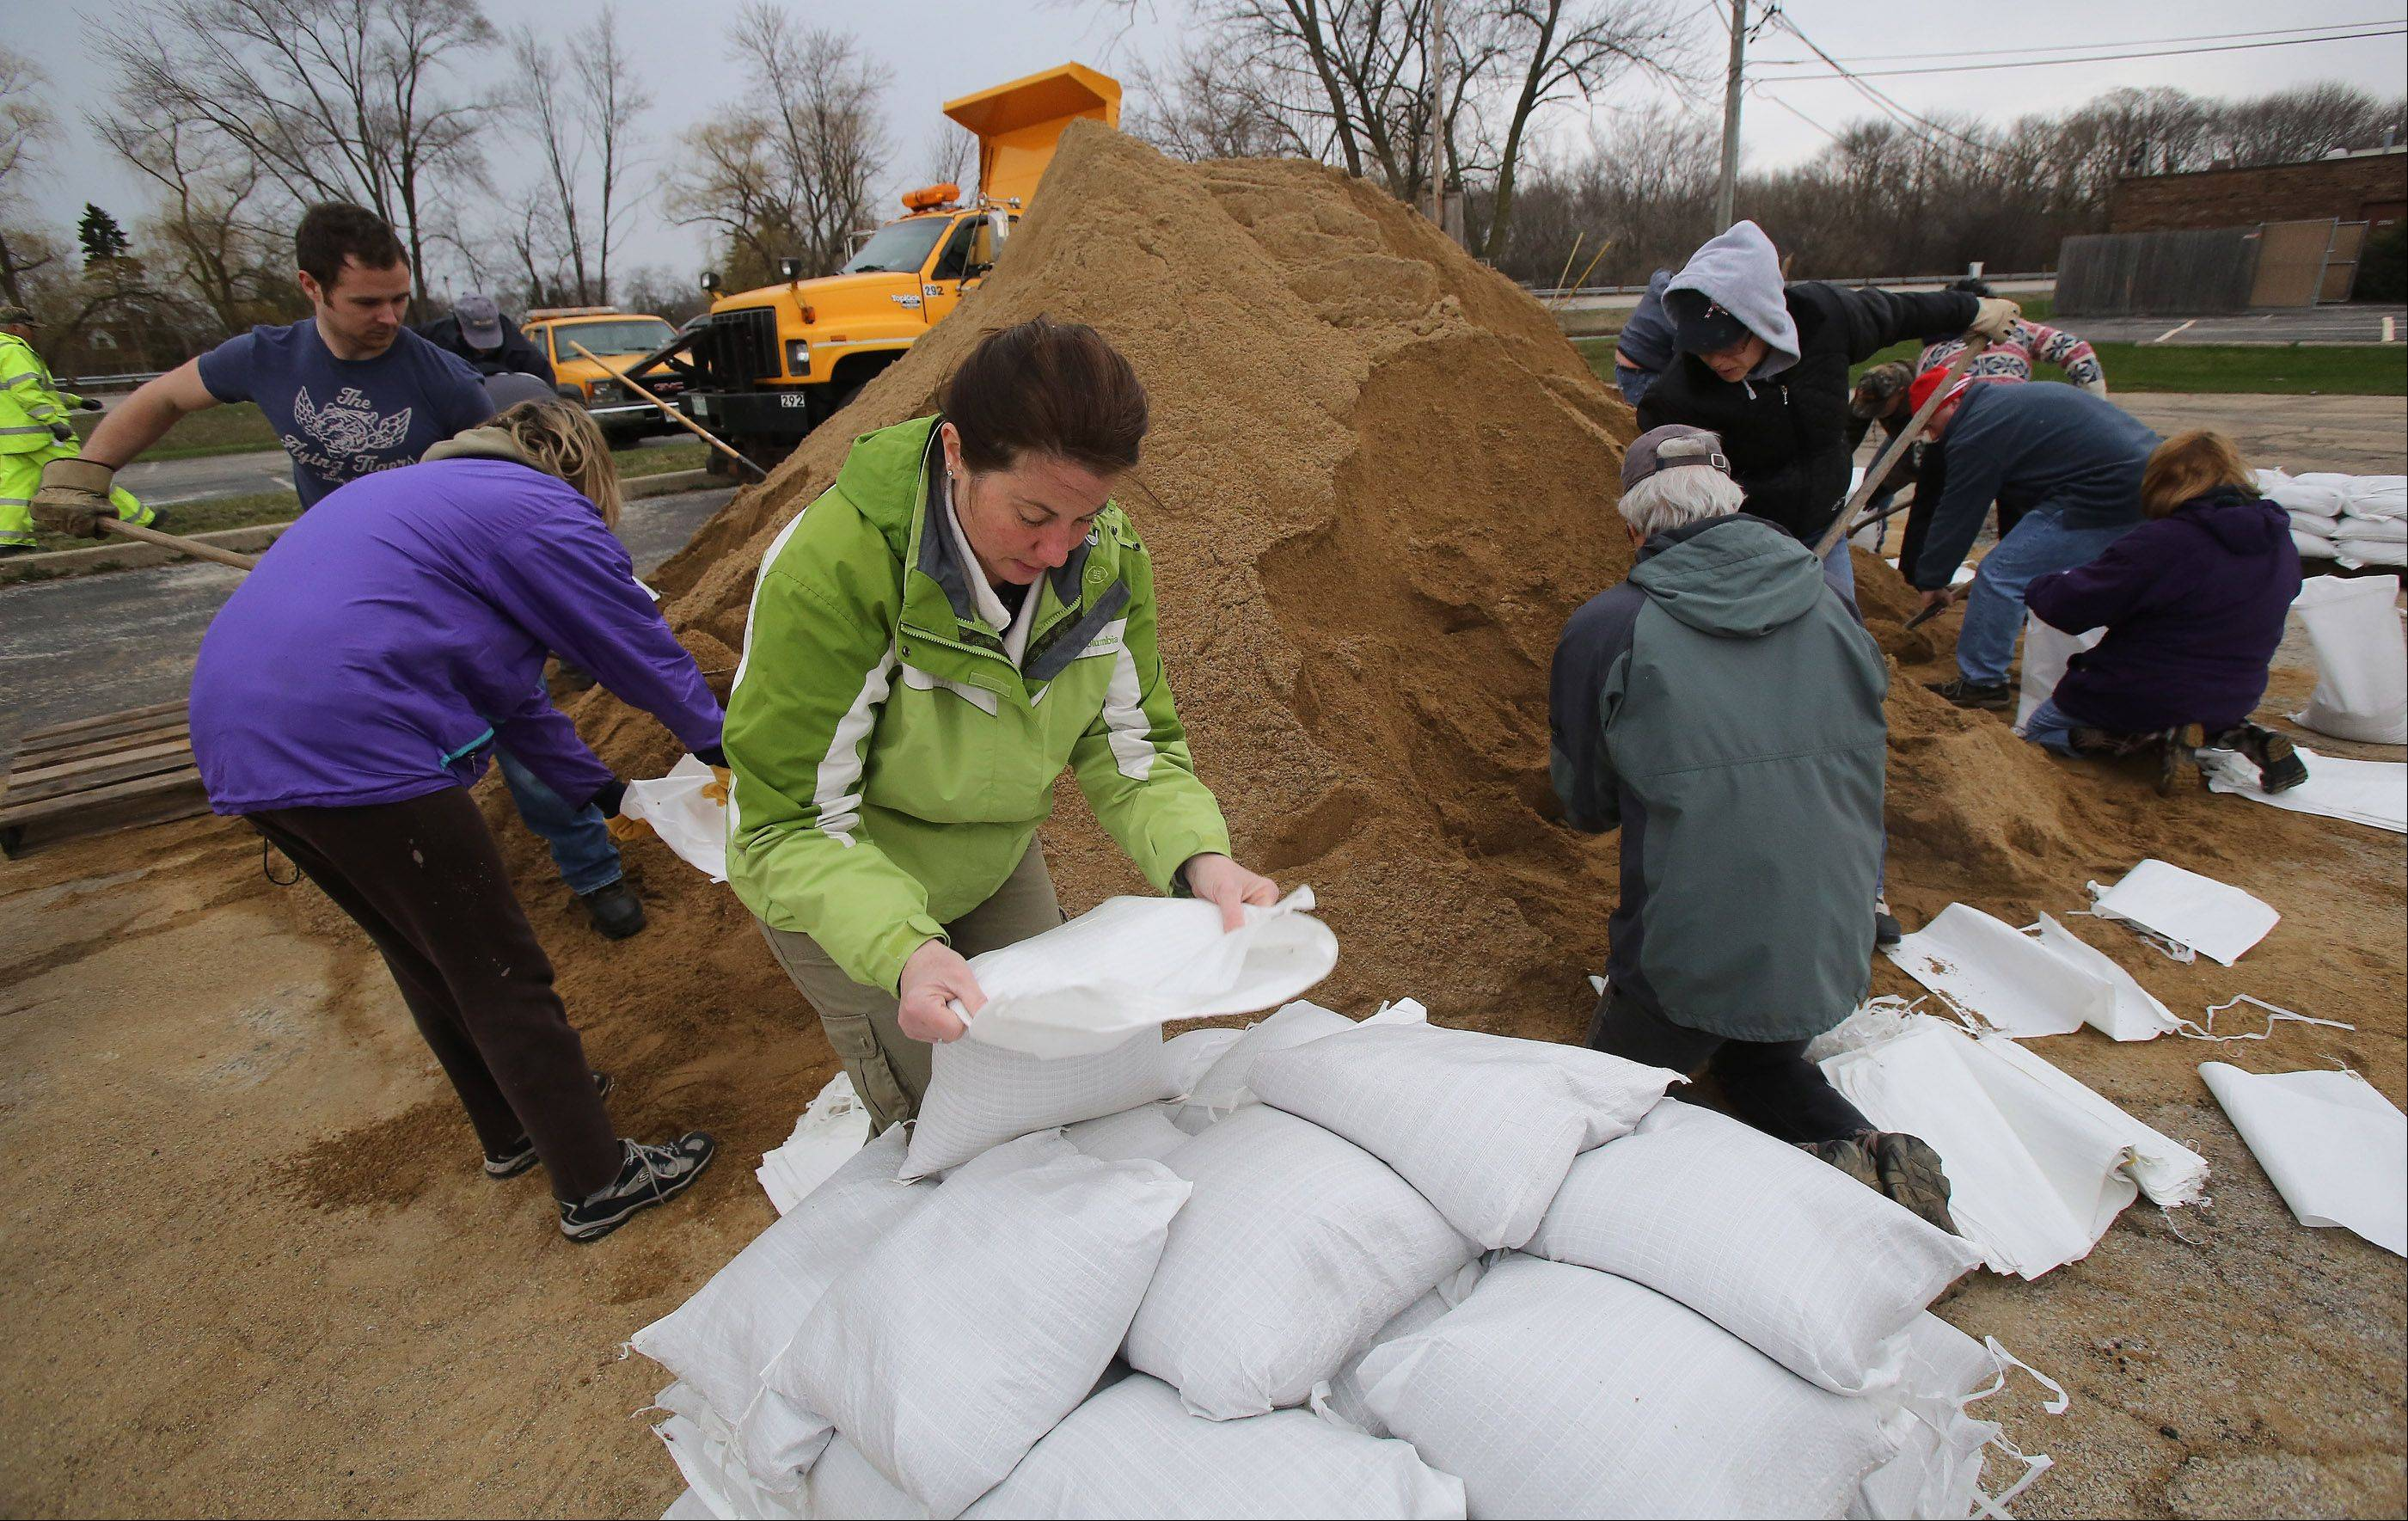 Gurnee resident Sue Tebbetts was among the volunteers filling sandbags on Wednesday in preparation for any Des Plaines River flooding as heavy rains are expected to continue Thursday.